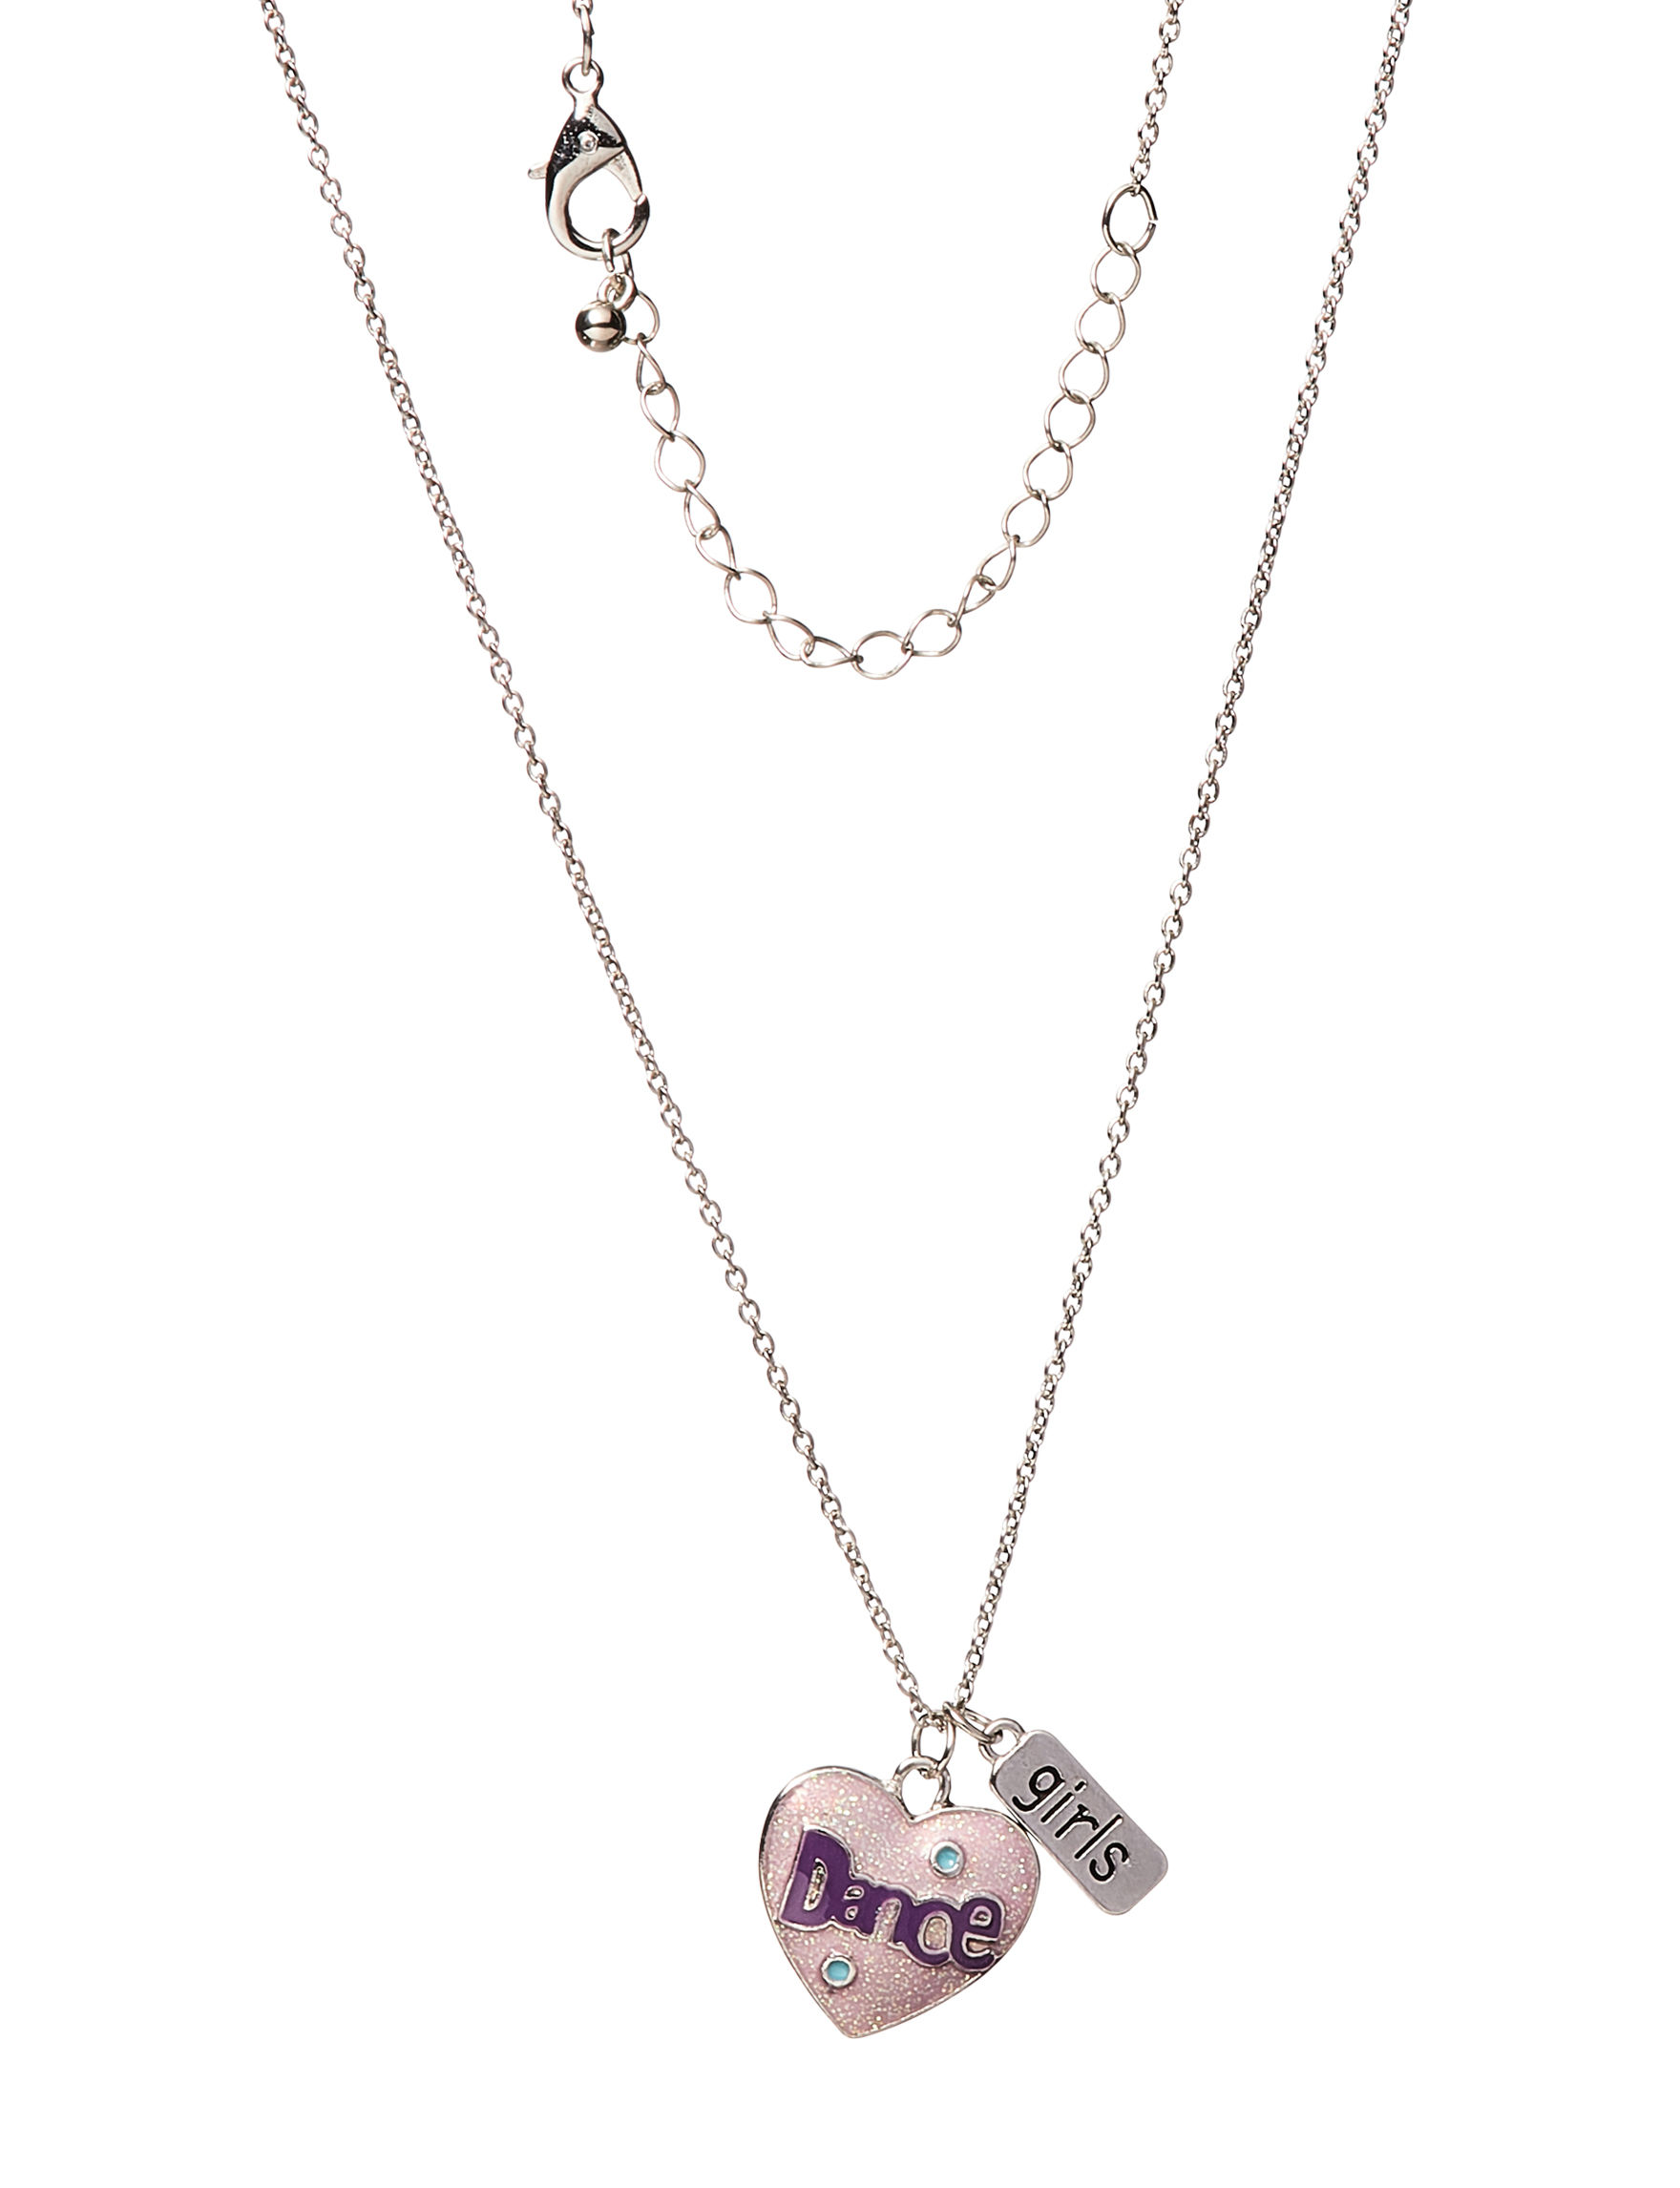 Tanya Silver / Pink Necklaces & Pendants Fashion Jewelry